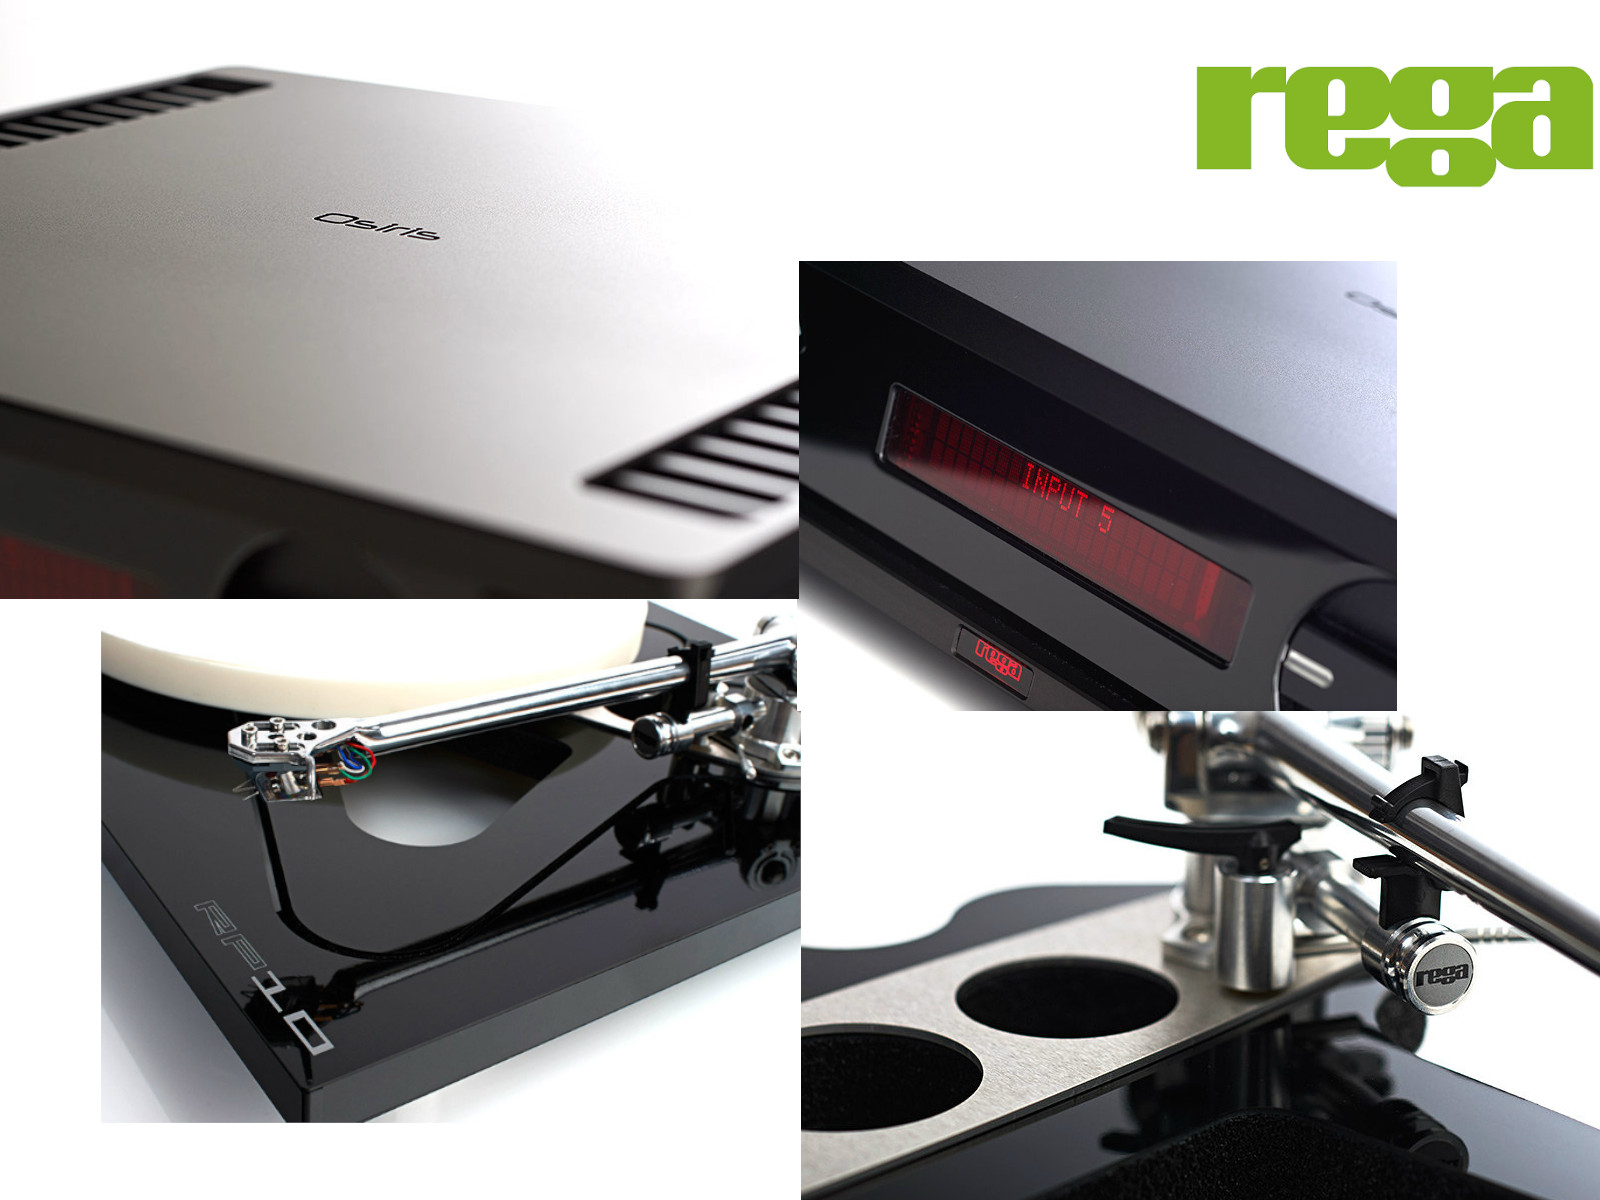 Images by Rega Research, edited by Funall Audio